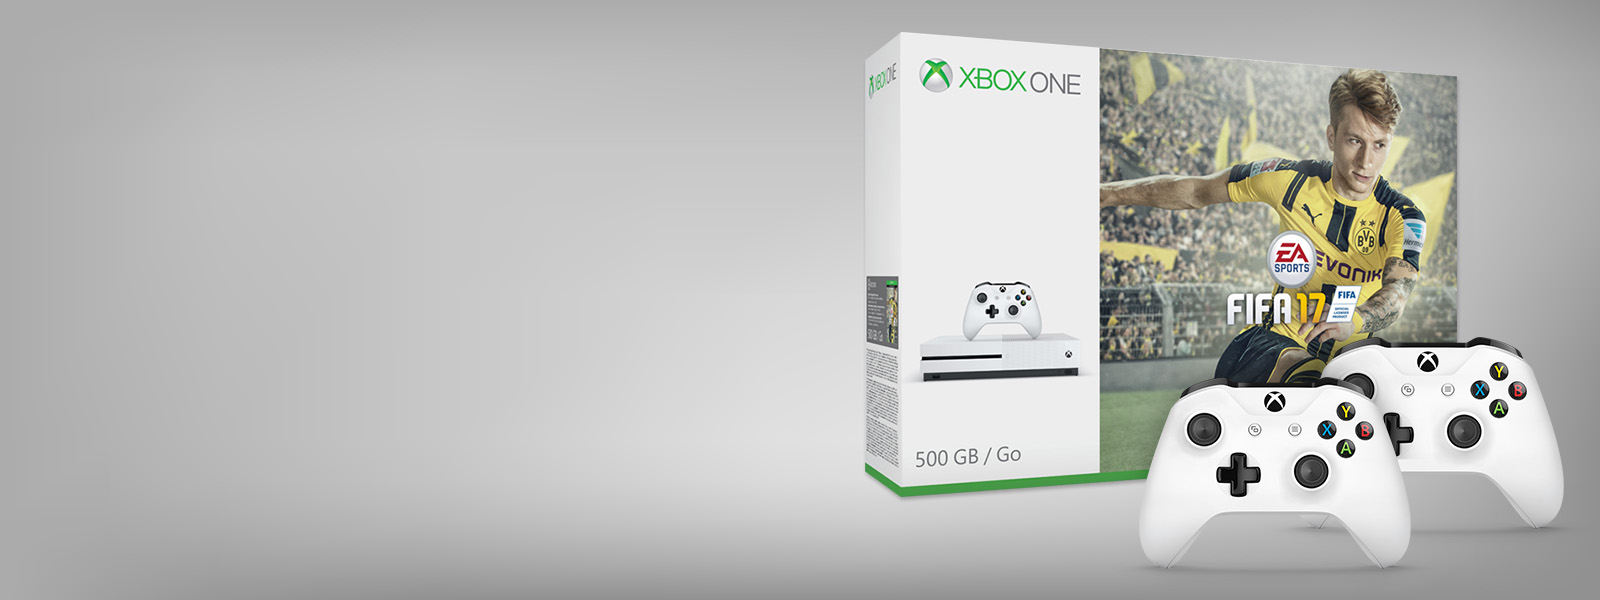 Pack Xbox One S FIFA17 avec deux manettes Xbox  blanches.